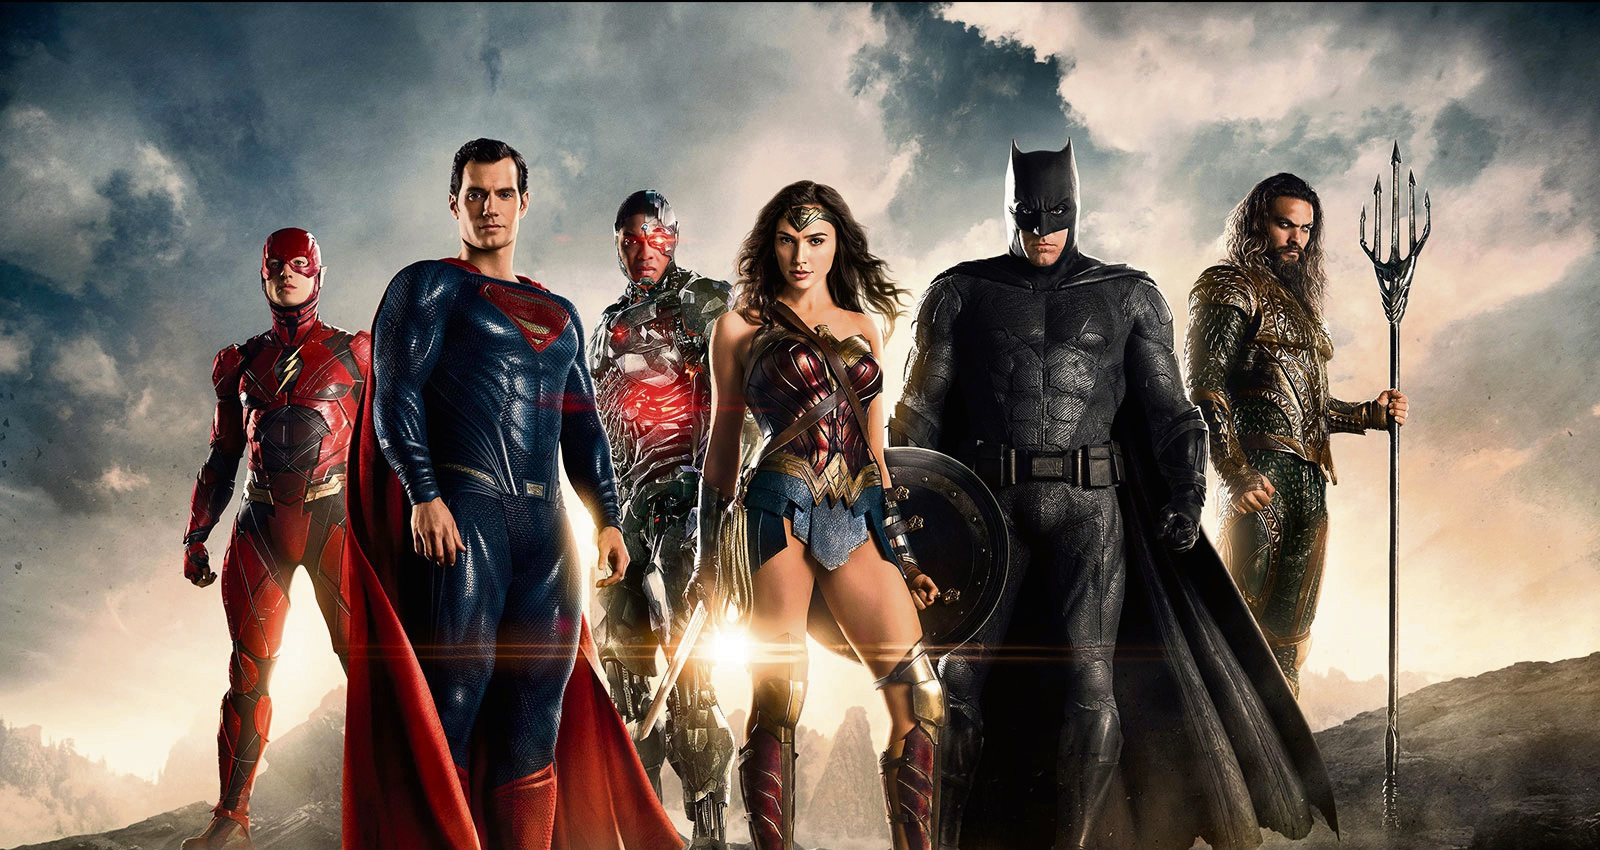 'Justice League' Rotten Tomatoes Score Drops From Initial Reveal